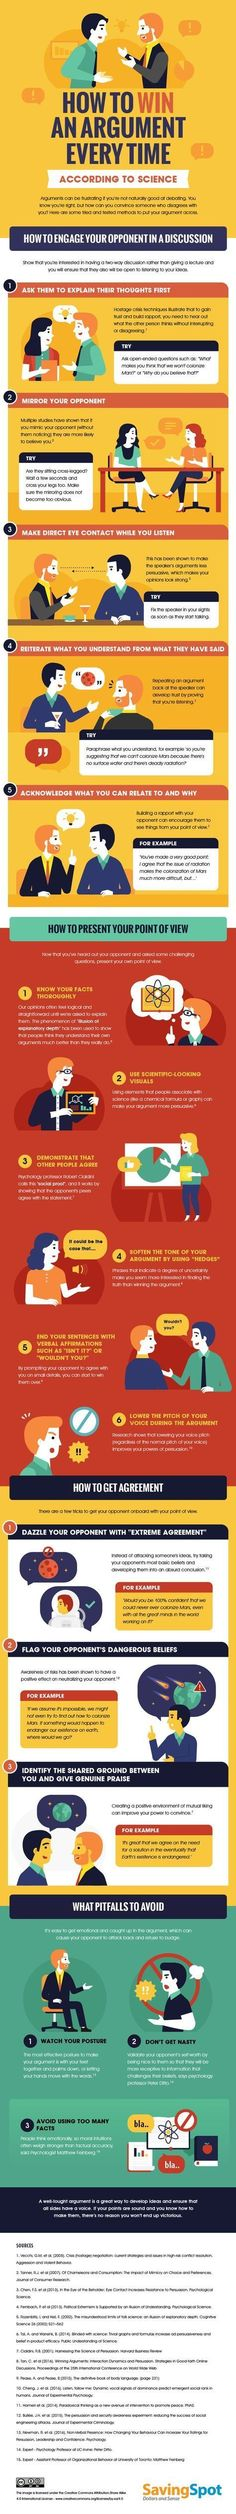 Assertiveness techniques Infographic